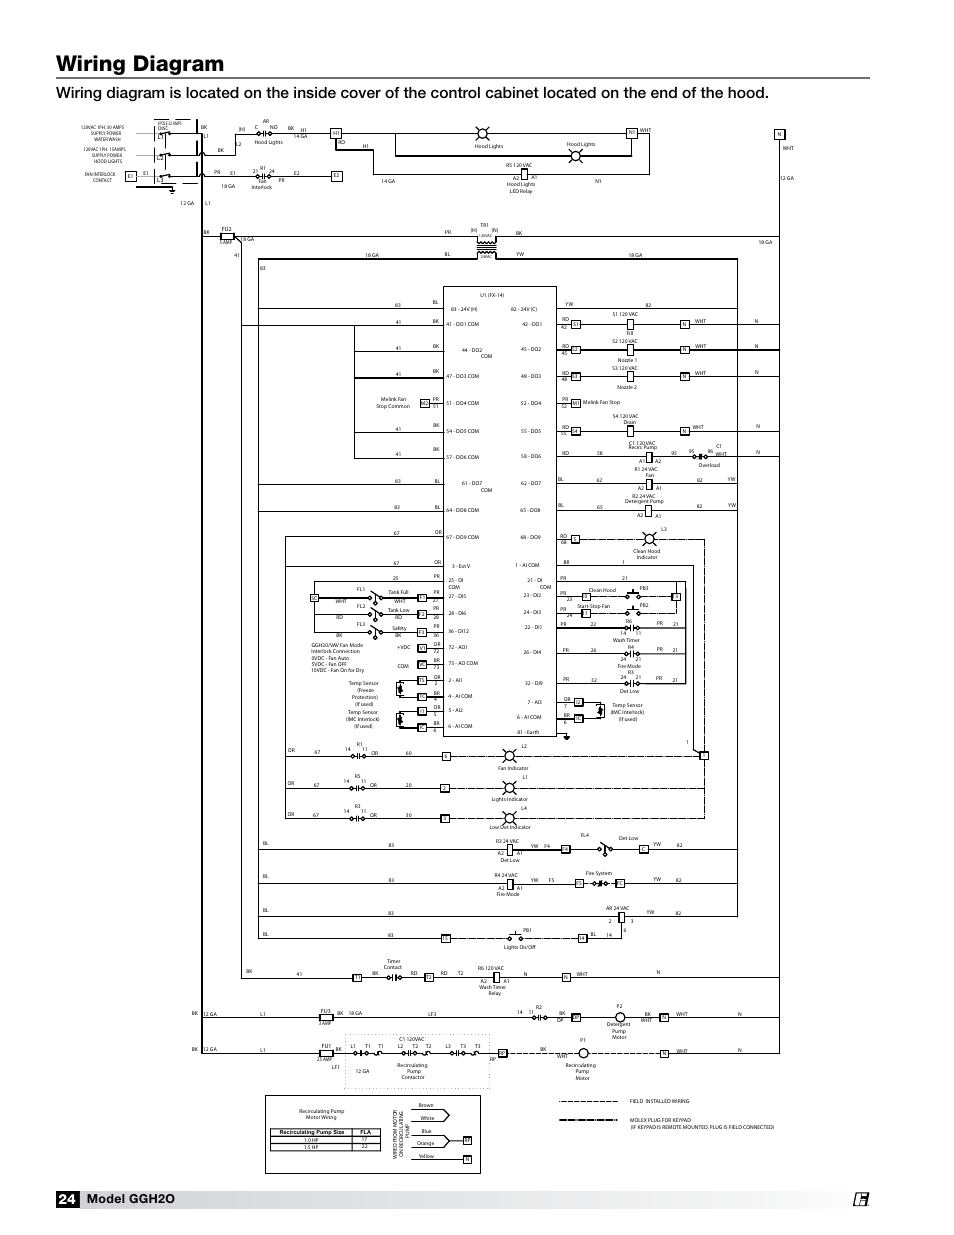 Wiring Diagram Ladder Ggh2o Model Greenheck Fan Imc Relay Grease Grabber H2o Auto Cleaning Hood Ggh20 User Manual Page 24 28